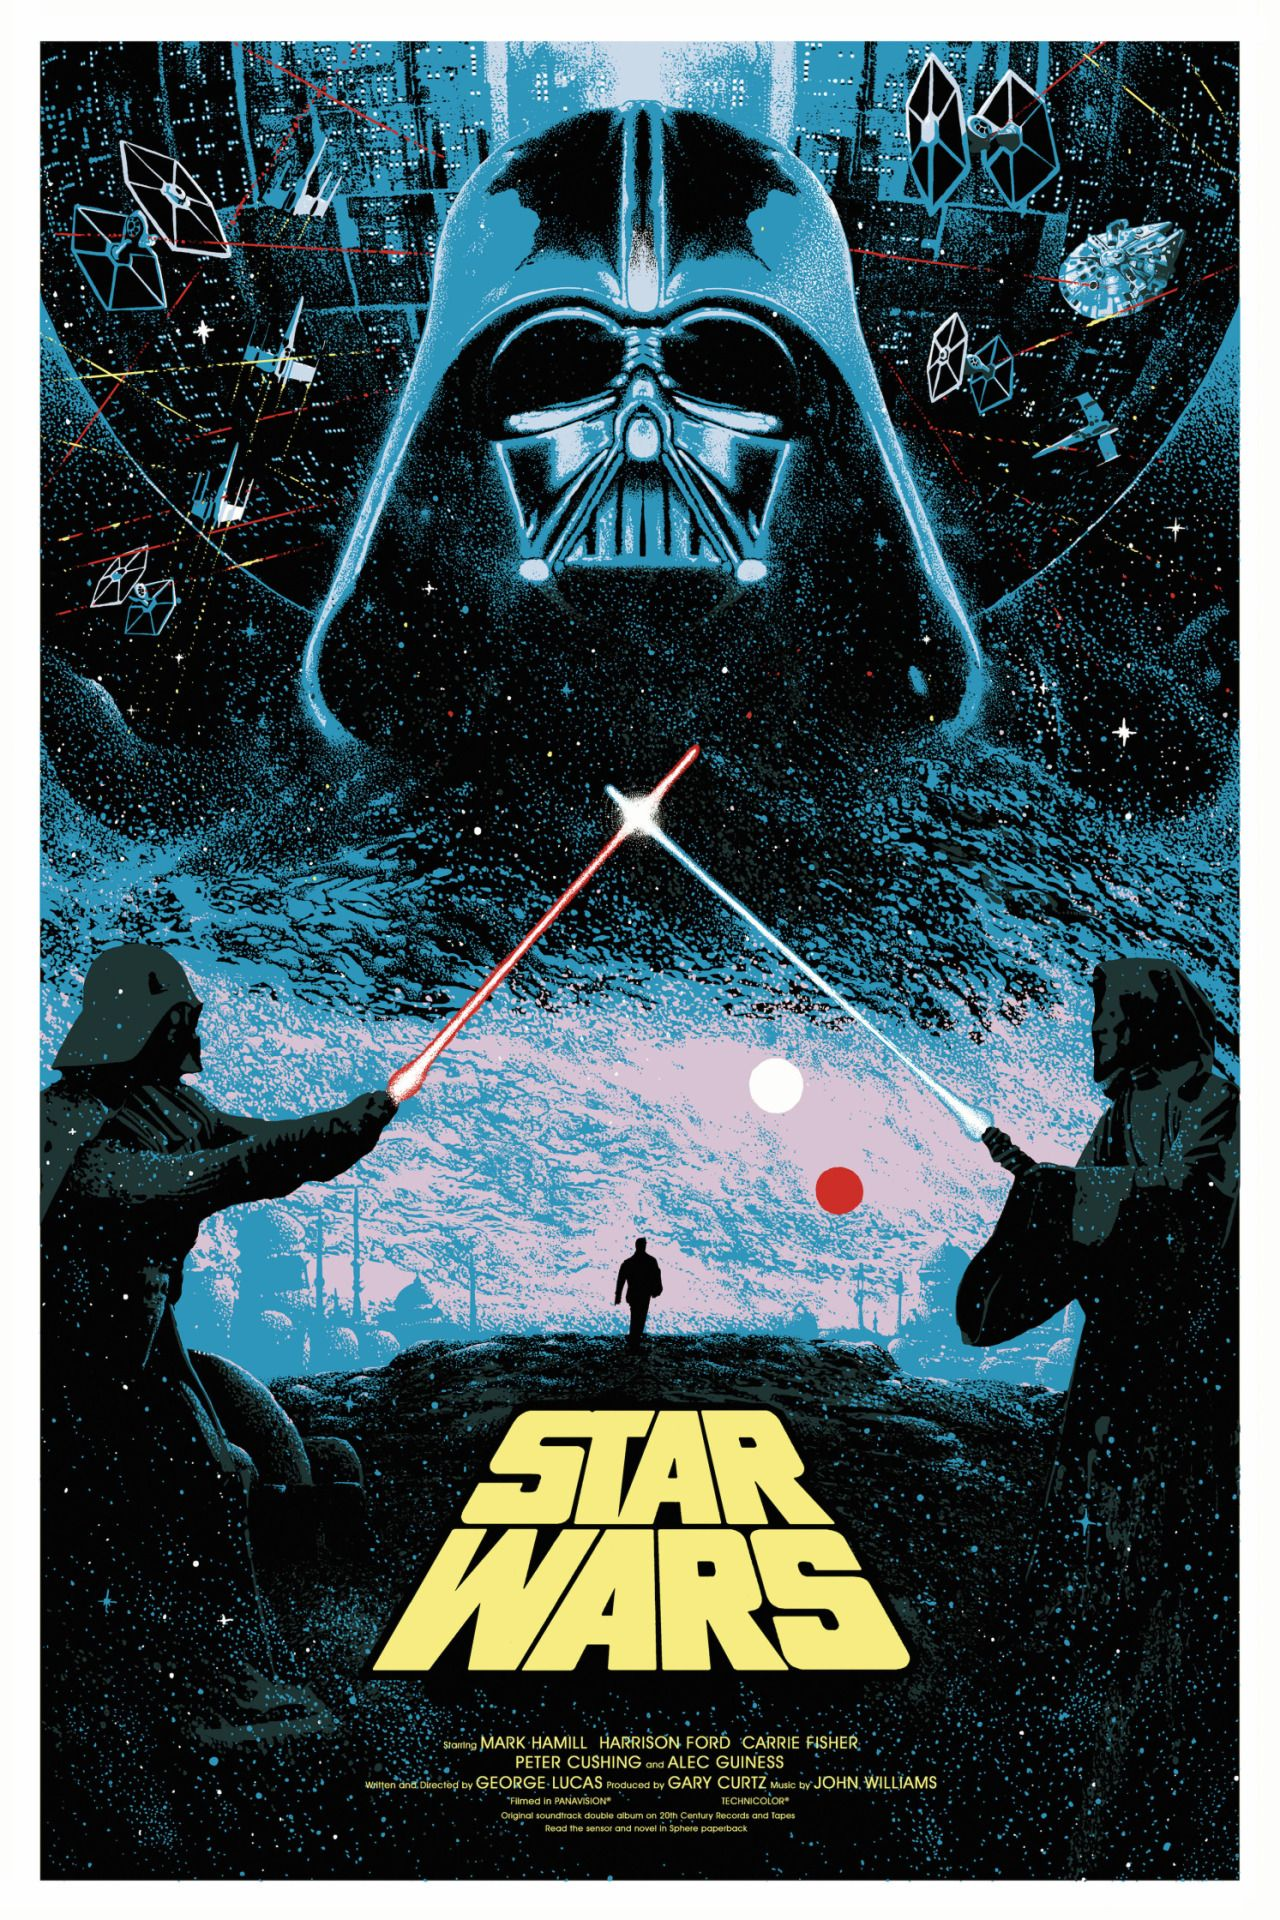 Poster design tumblr - Explore Star Wars Poster Star Wars Art And More